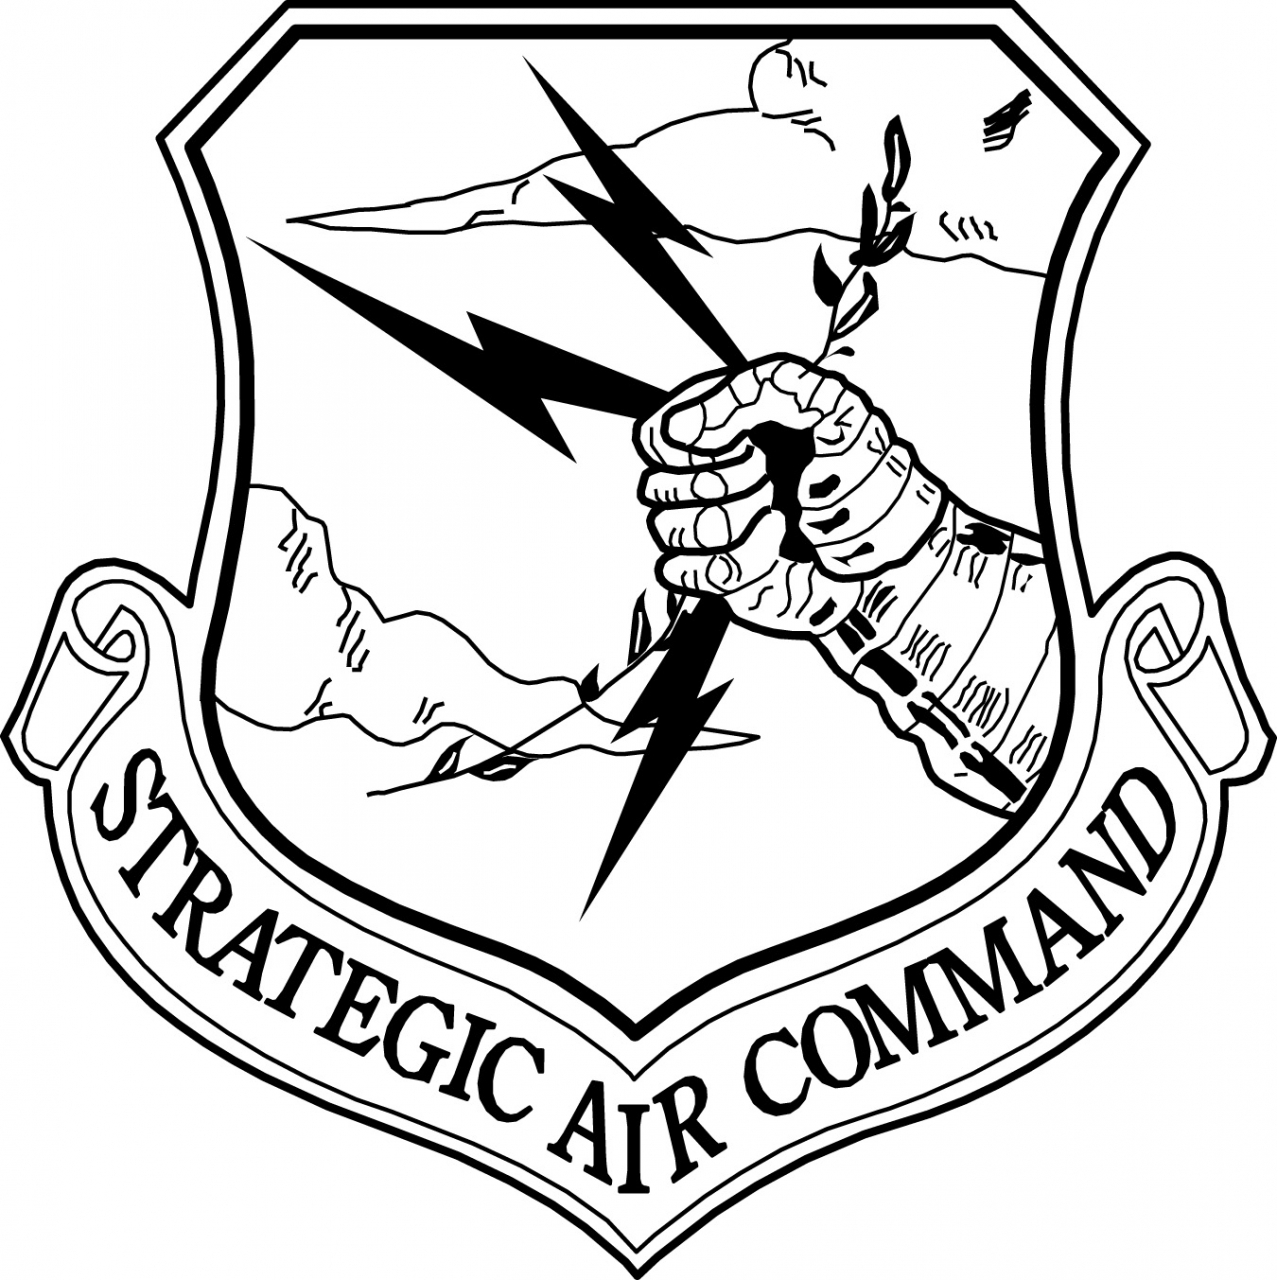 USAF Strategic Air Command